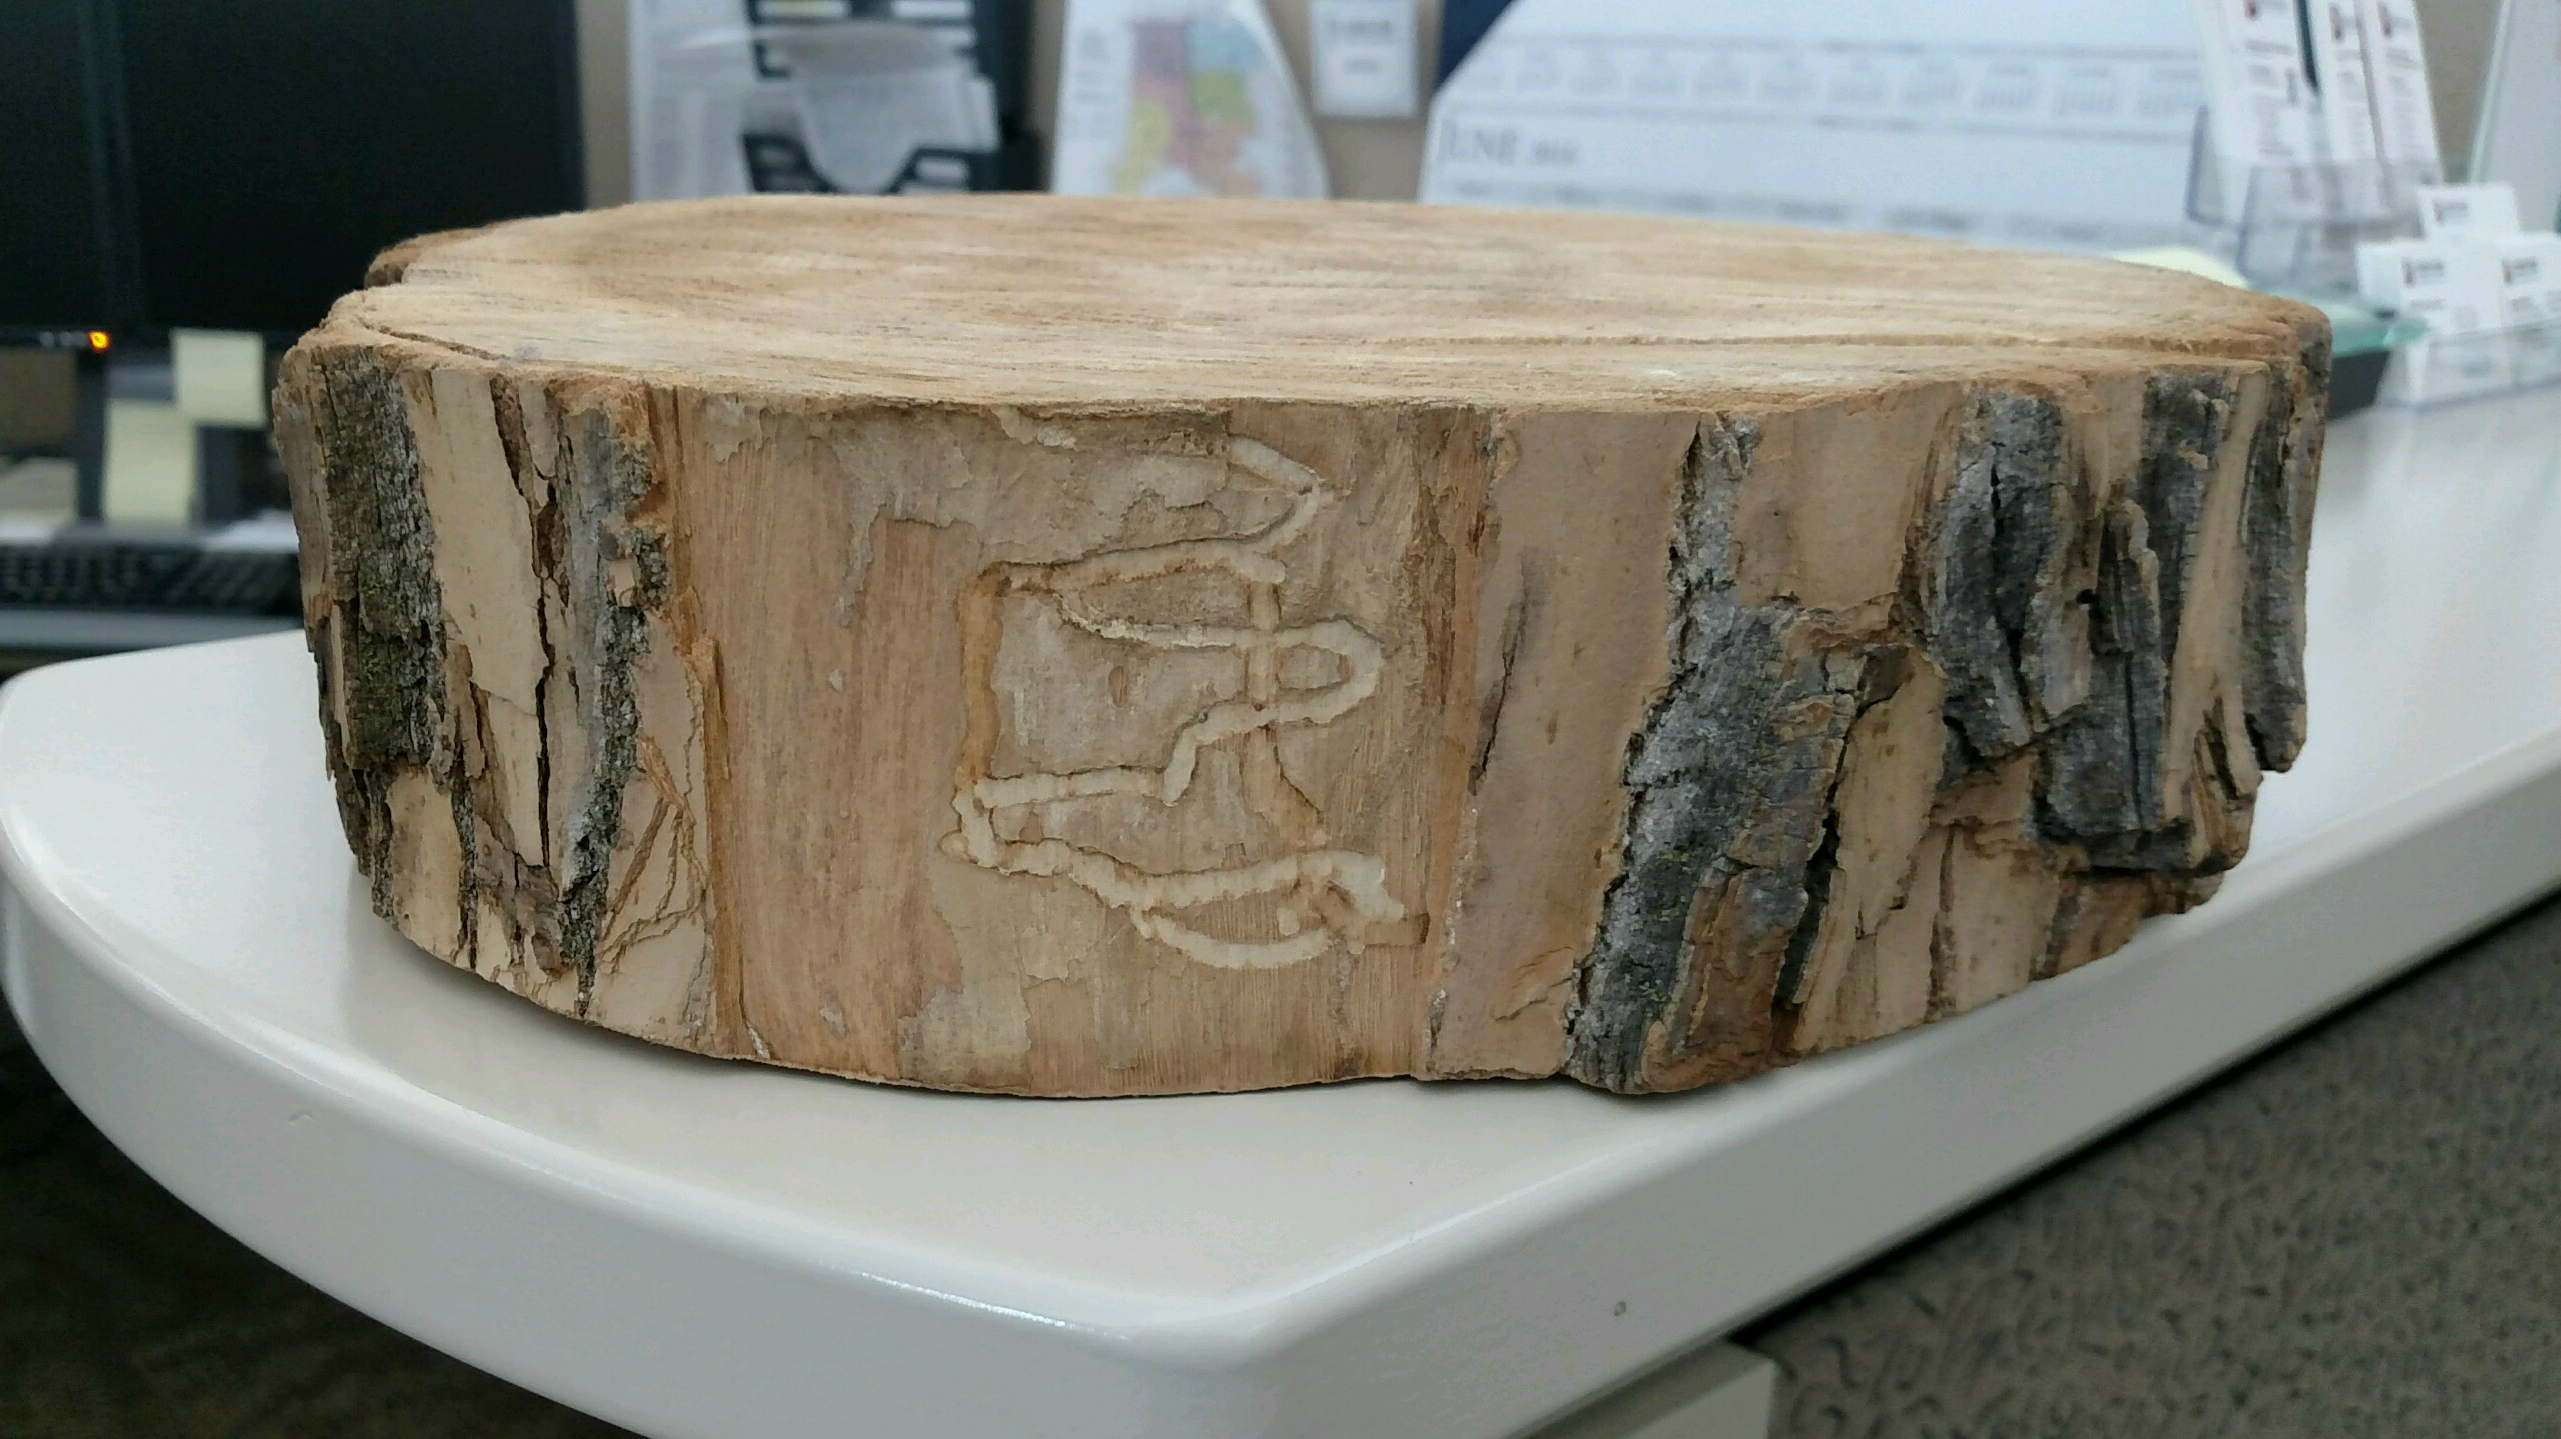 Denver's Office Of The City Forester Confiscated This Trivet That Was Being Used By A Colorado Caterer, After Became Clear It Was Carved From An Ash Tree That Had Been Infested With Emerald Ash Borer (EAB). It Was Later Determined The Trivet Was Made From Lumber In Lake Forest, Ill., In The Heart Of An EAB Infestation Zone.